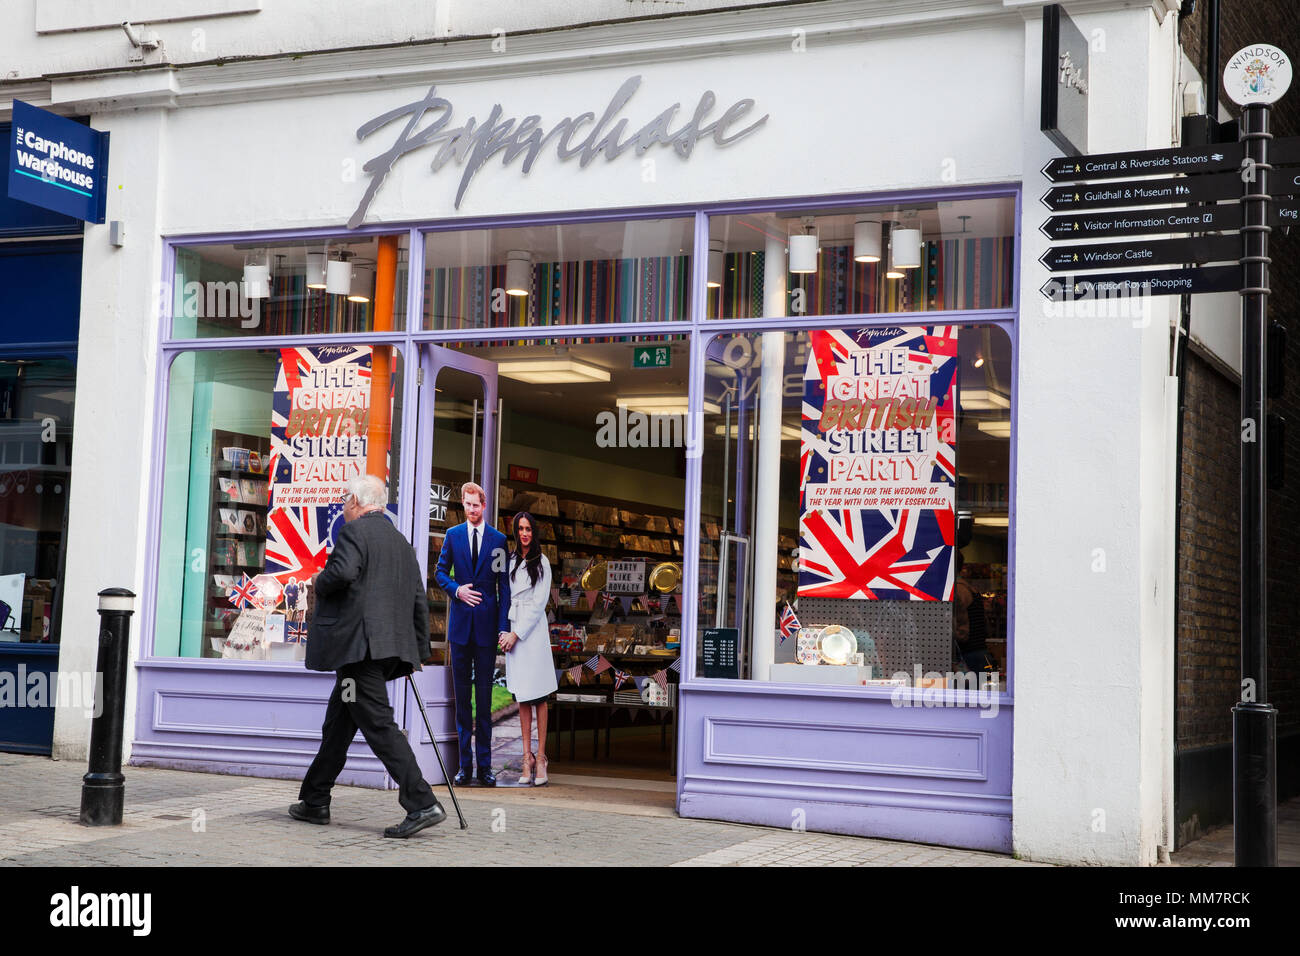 Windsor, UK. 10th May, 2018. Many shops around the town centre are displaying cardboard cutouts of Prince Harry and Meghan Markle in preparation for their wedding on 19th May. Credit: Mark Kerrison/Alamy Live News - Stock Image